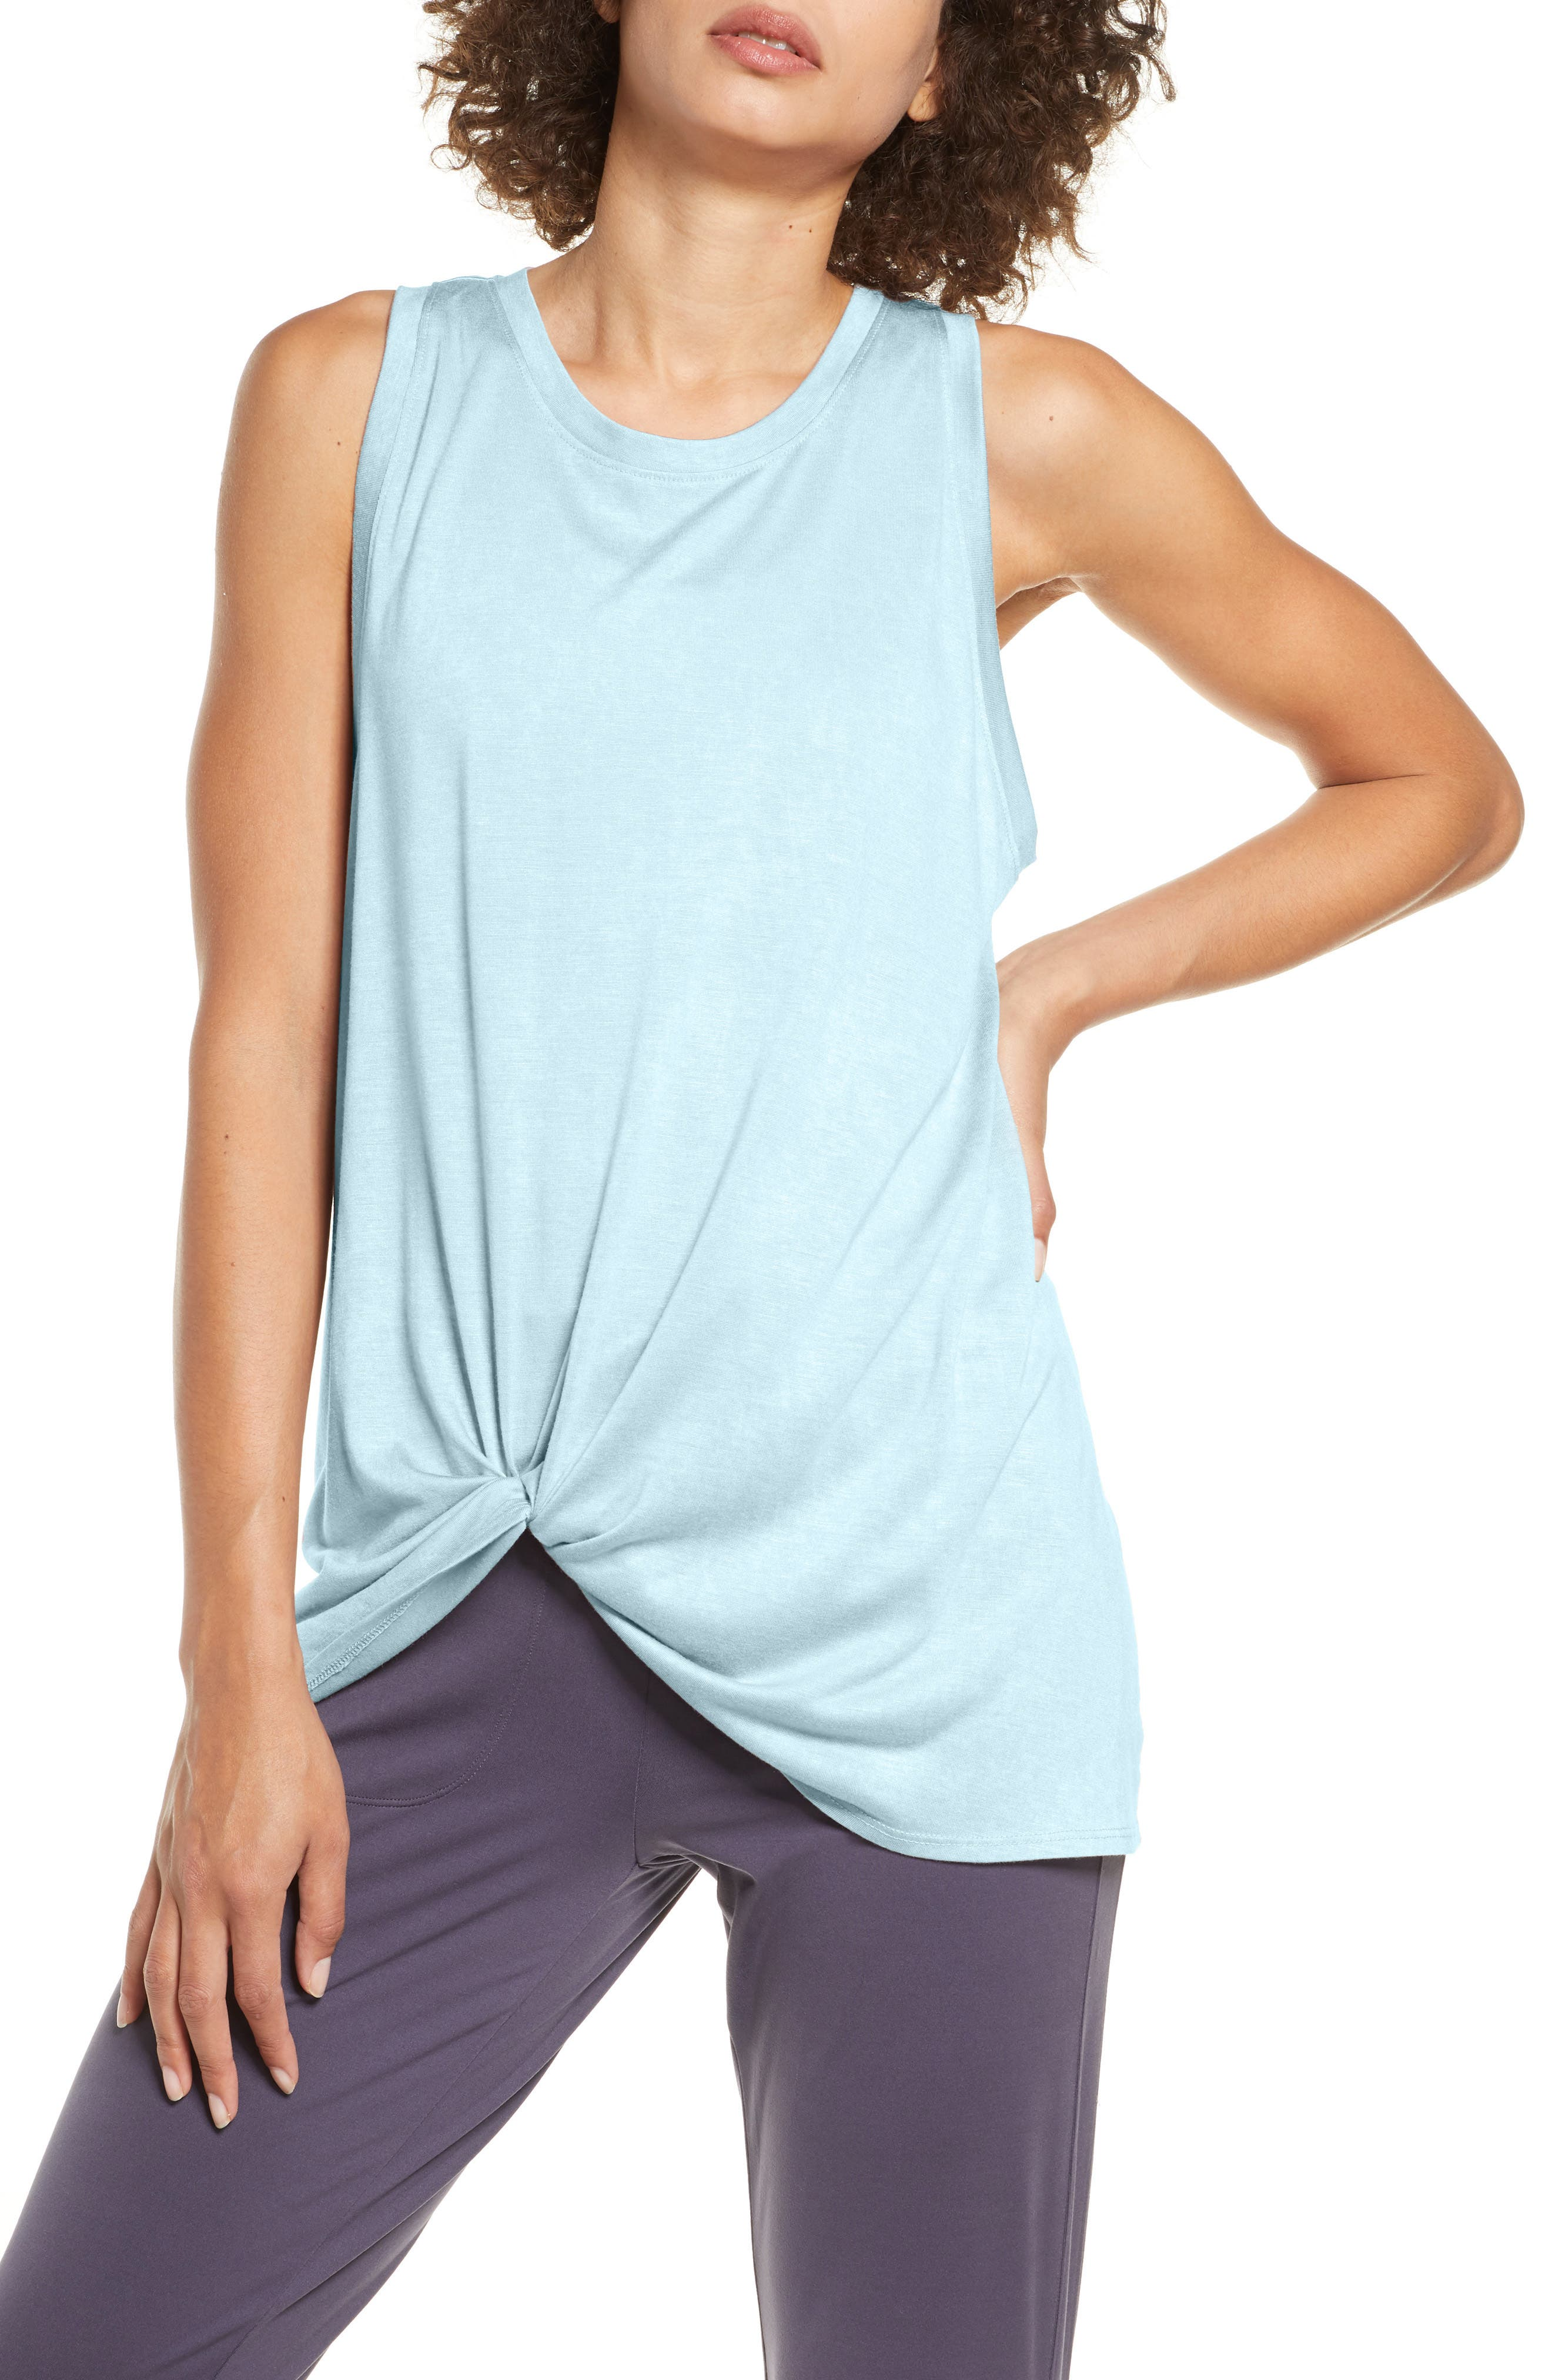 Styled with a built-in front tuck, this hazy-washed tank keeps you cool from gym to street. Style Name: Zella Tuck Front Tank Top. Style Number: 5935784. Available in stores.